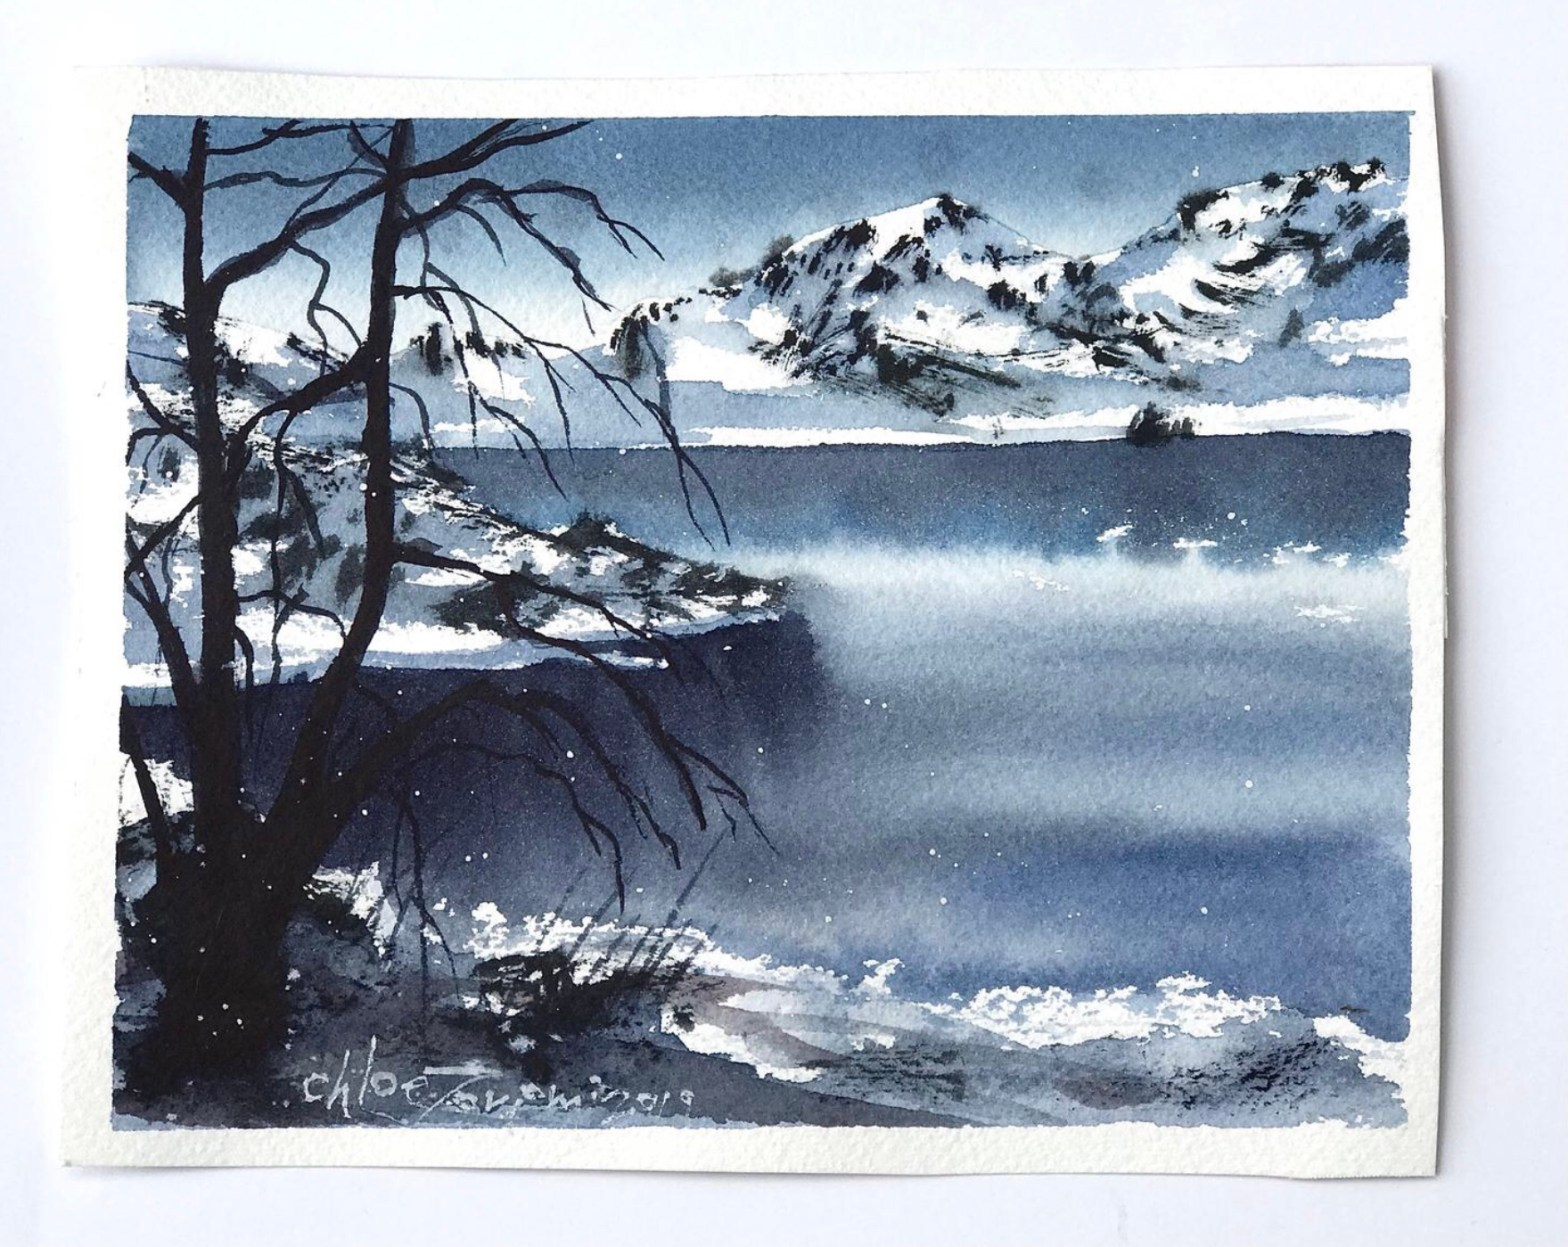 Dreaming of Winter watercolor artwork by Chloe Tomomi